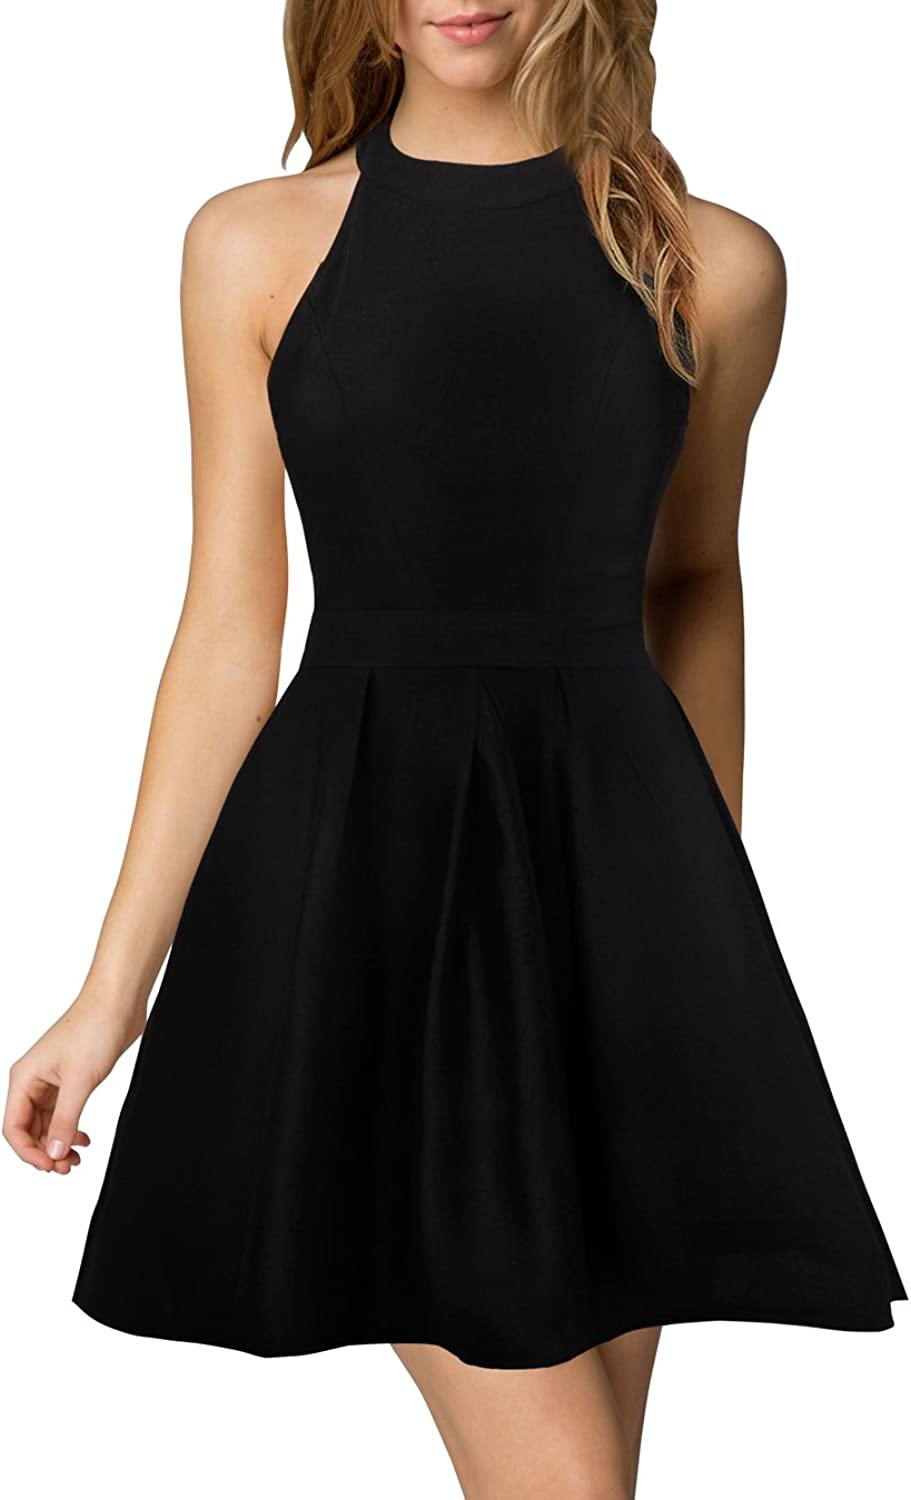 Berydress Women's Halter Neck Backless Black Dress Sleeveless ALine Nightclub Party Cocktail Dresses (US10, 6019_Black)